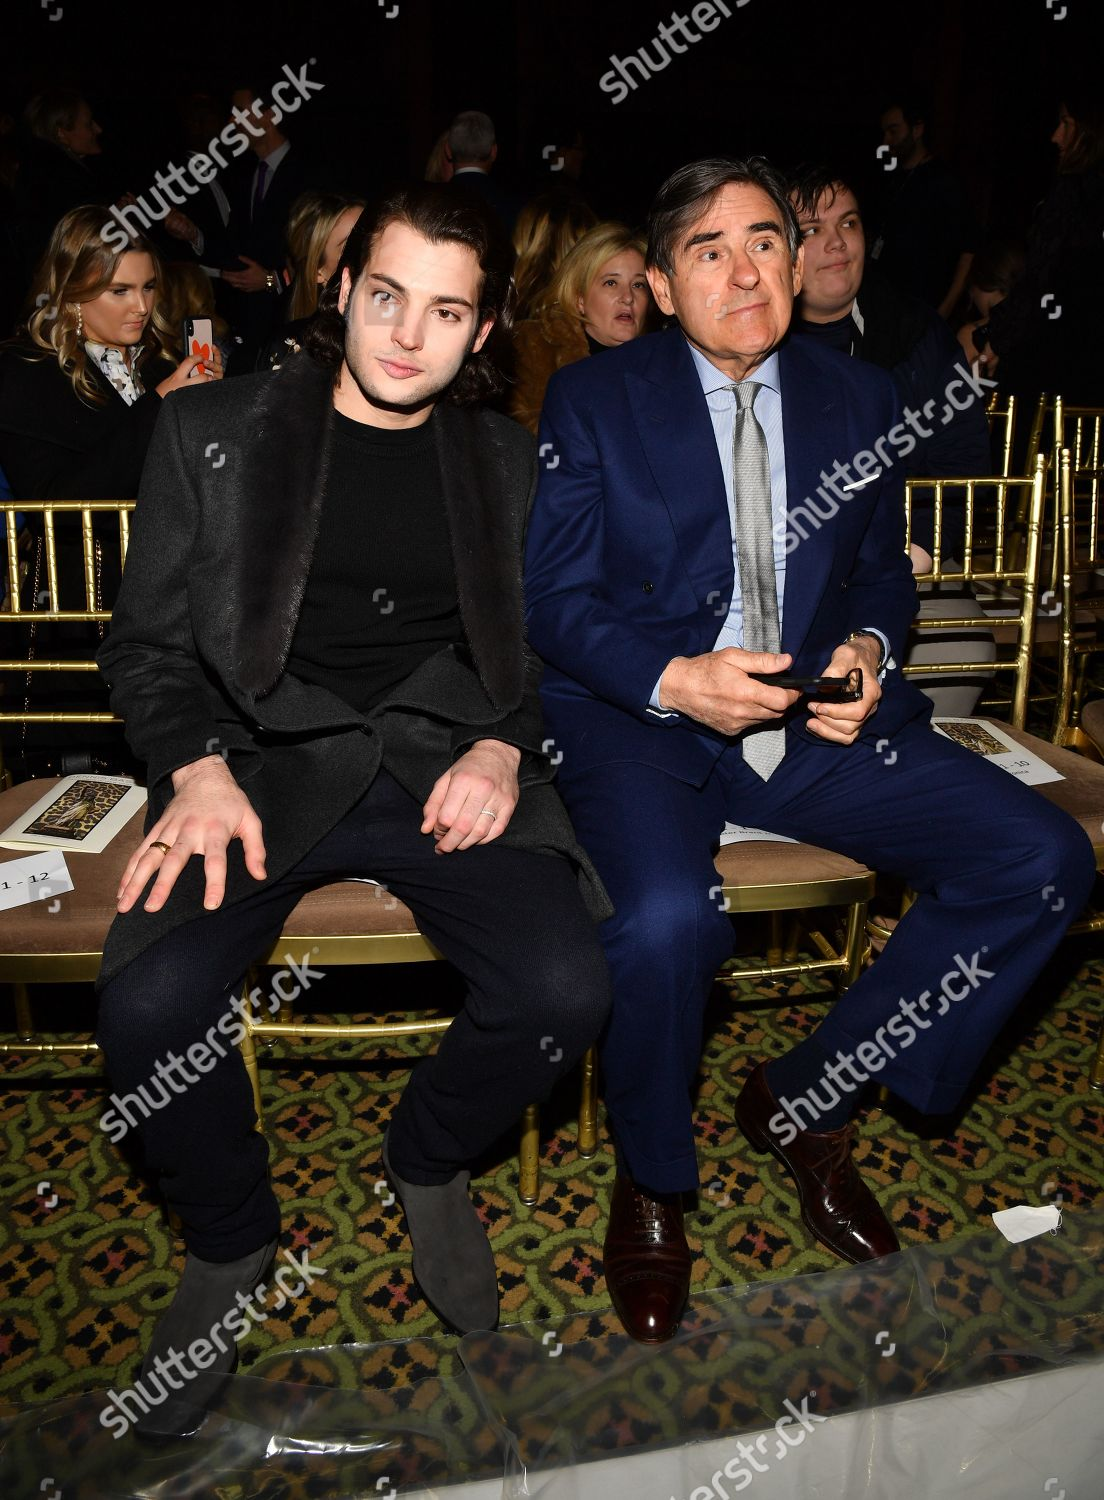 Stock photo of Dennis Basso show, Front Row, Fall Winter 2019, New York Fashion Week, USA - 11 Feb 2019